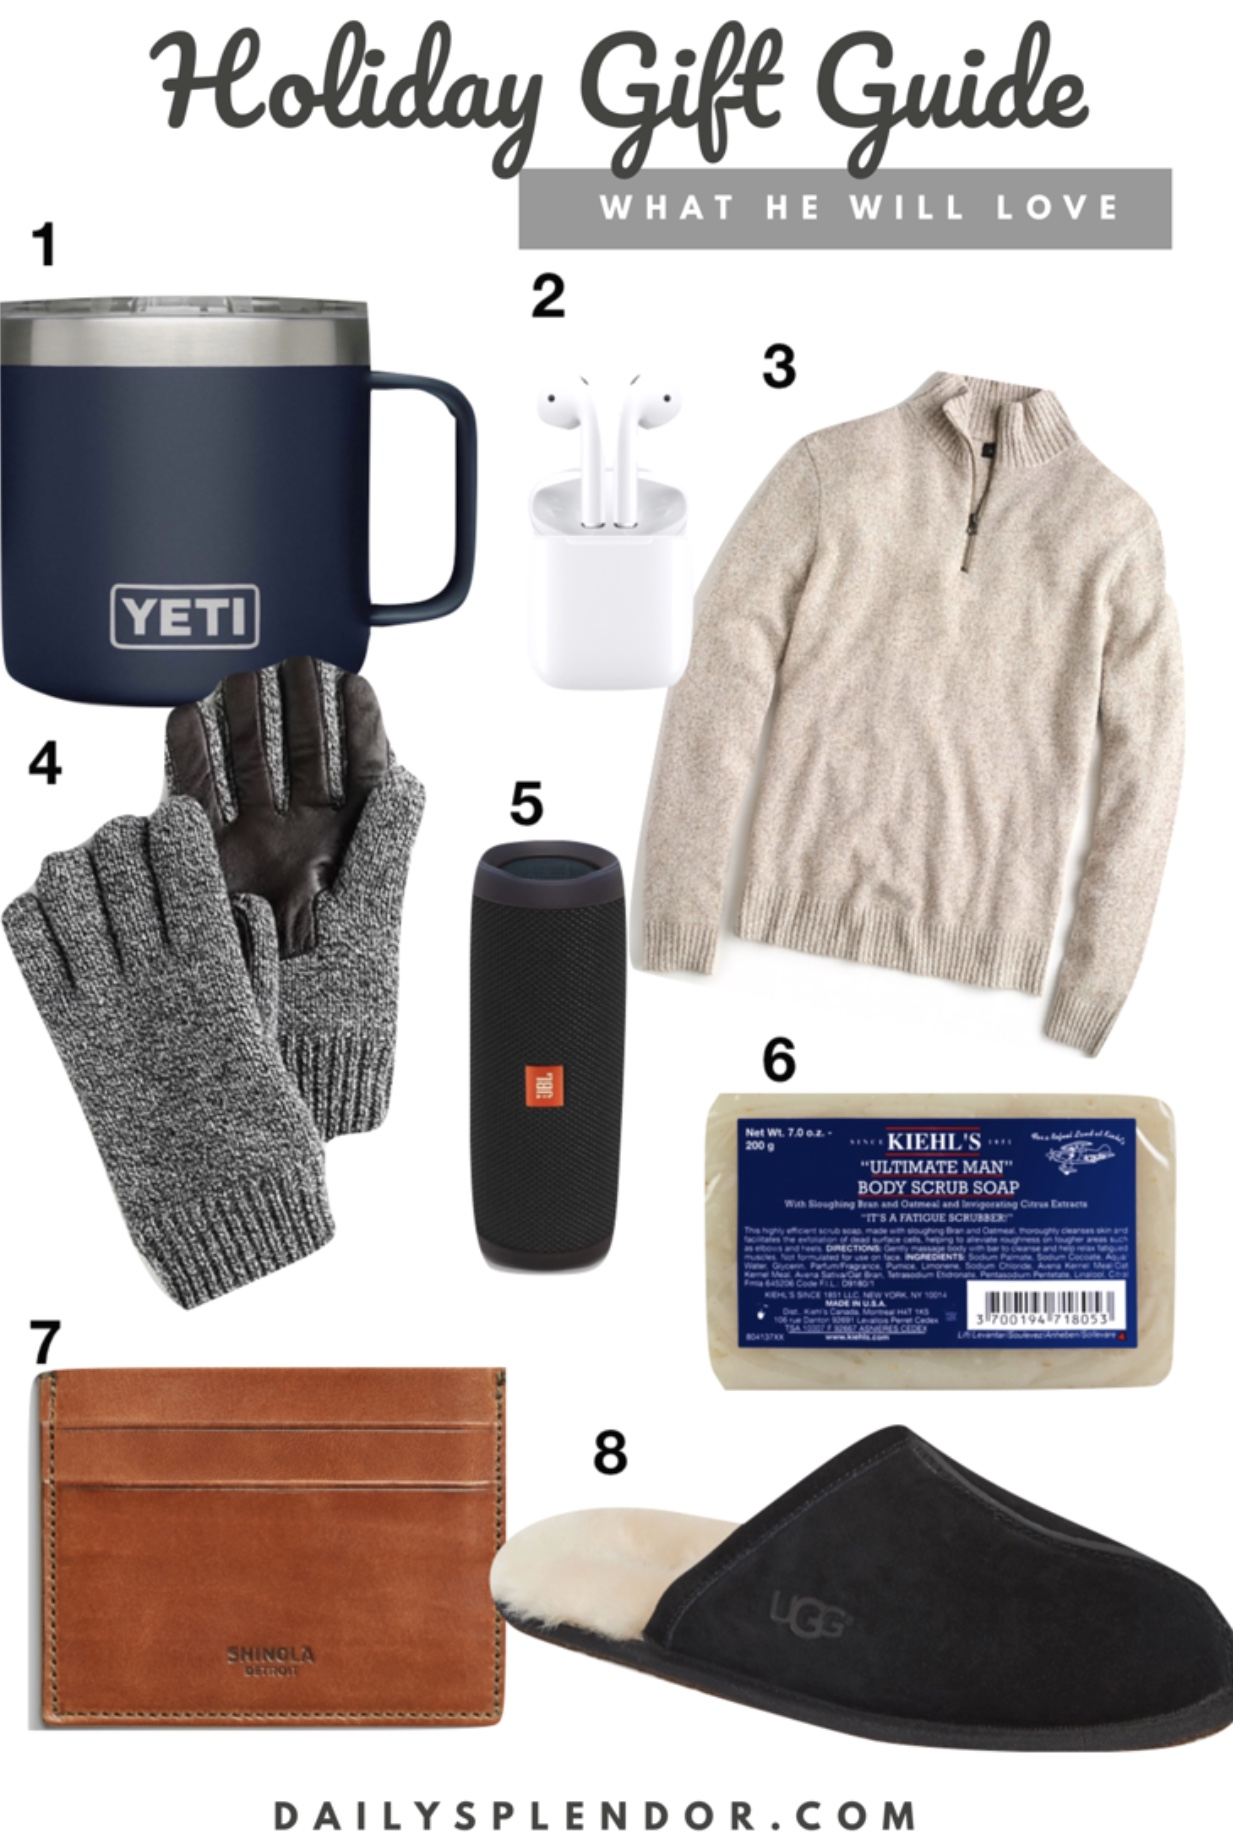 2018 Holiday Gift Guide for Men | Daily Splendor Life and Style Blog | #giftguide #holidaygiftguide #2018giftguide #mensgiftguide #mensgiftideas #yeti #kiehls #jcrew #shinola